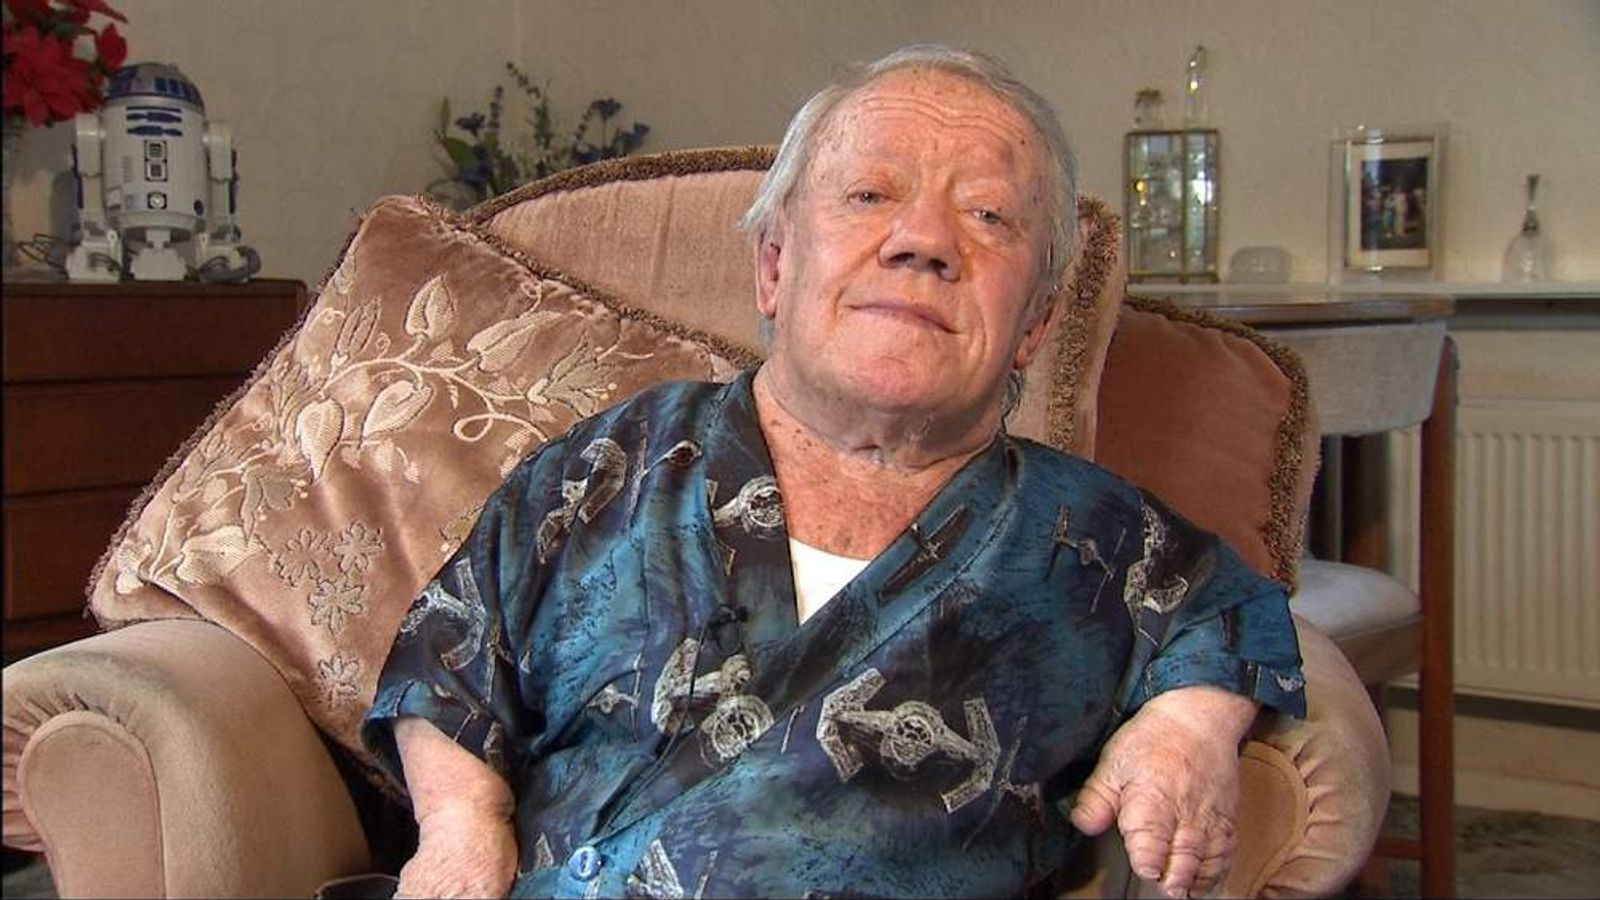 kenny baker imdbkenny baker r2d2, kenny baker cause of death, kenny baker twitter, kenny baker voice, kenny baker star wars, kenny baker, kenny baker singer, kenny baker anthony daniels, kenny baker force awakens, kenny baker height, kenny baker trumpet, kenny baker wiki, kenny baker 2015, kenny baker star wars 7, kenny baker jazz, kenny baker hates anthony daniels, kenny baker net worth, kenny baker fiddle, kenny baker inside r2d2, kenny baker imdb